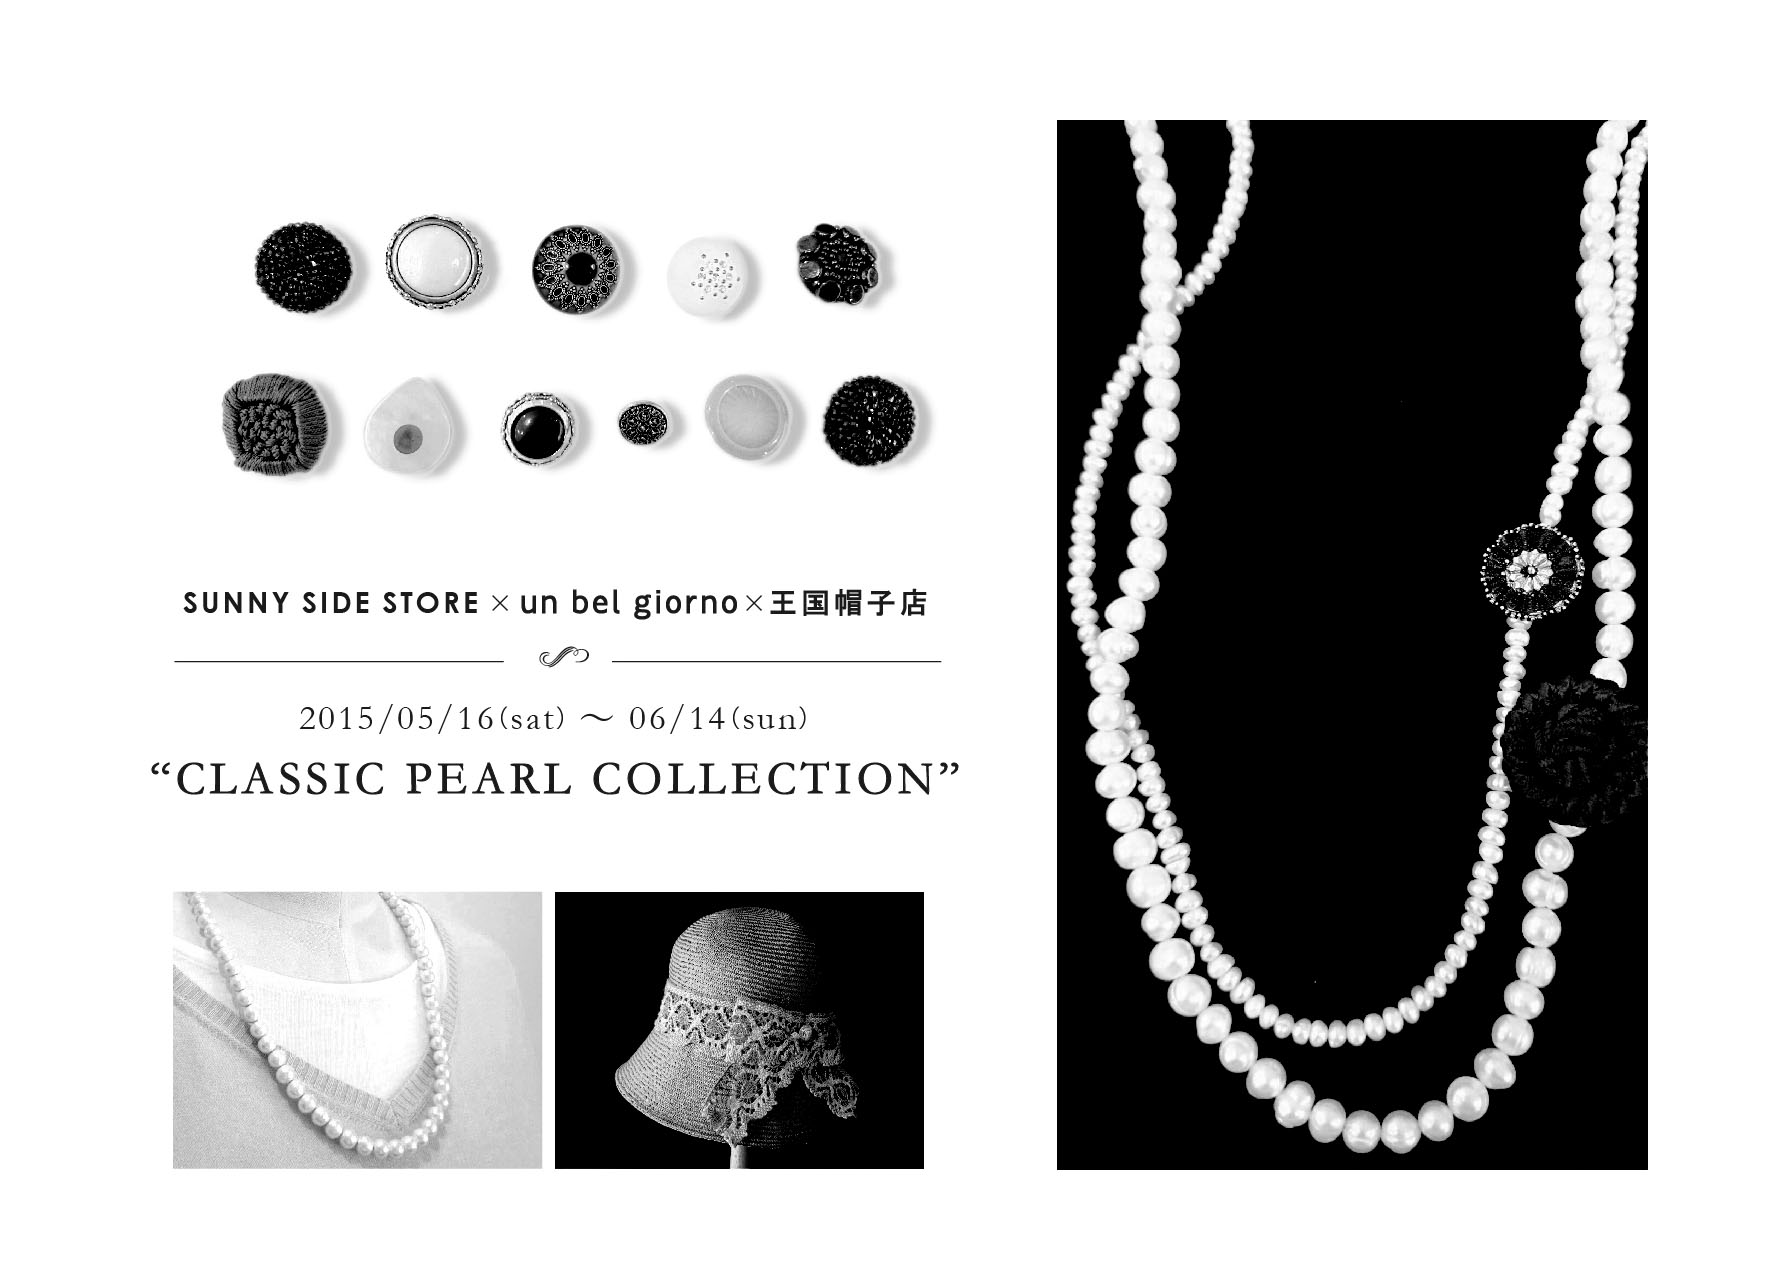 ClassicPearlCollection_1.jpg